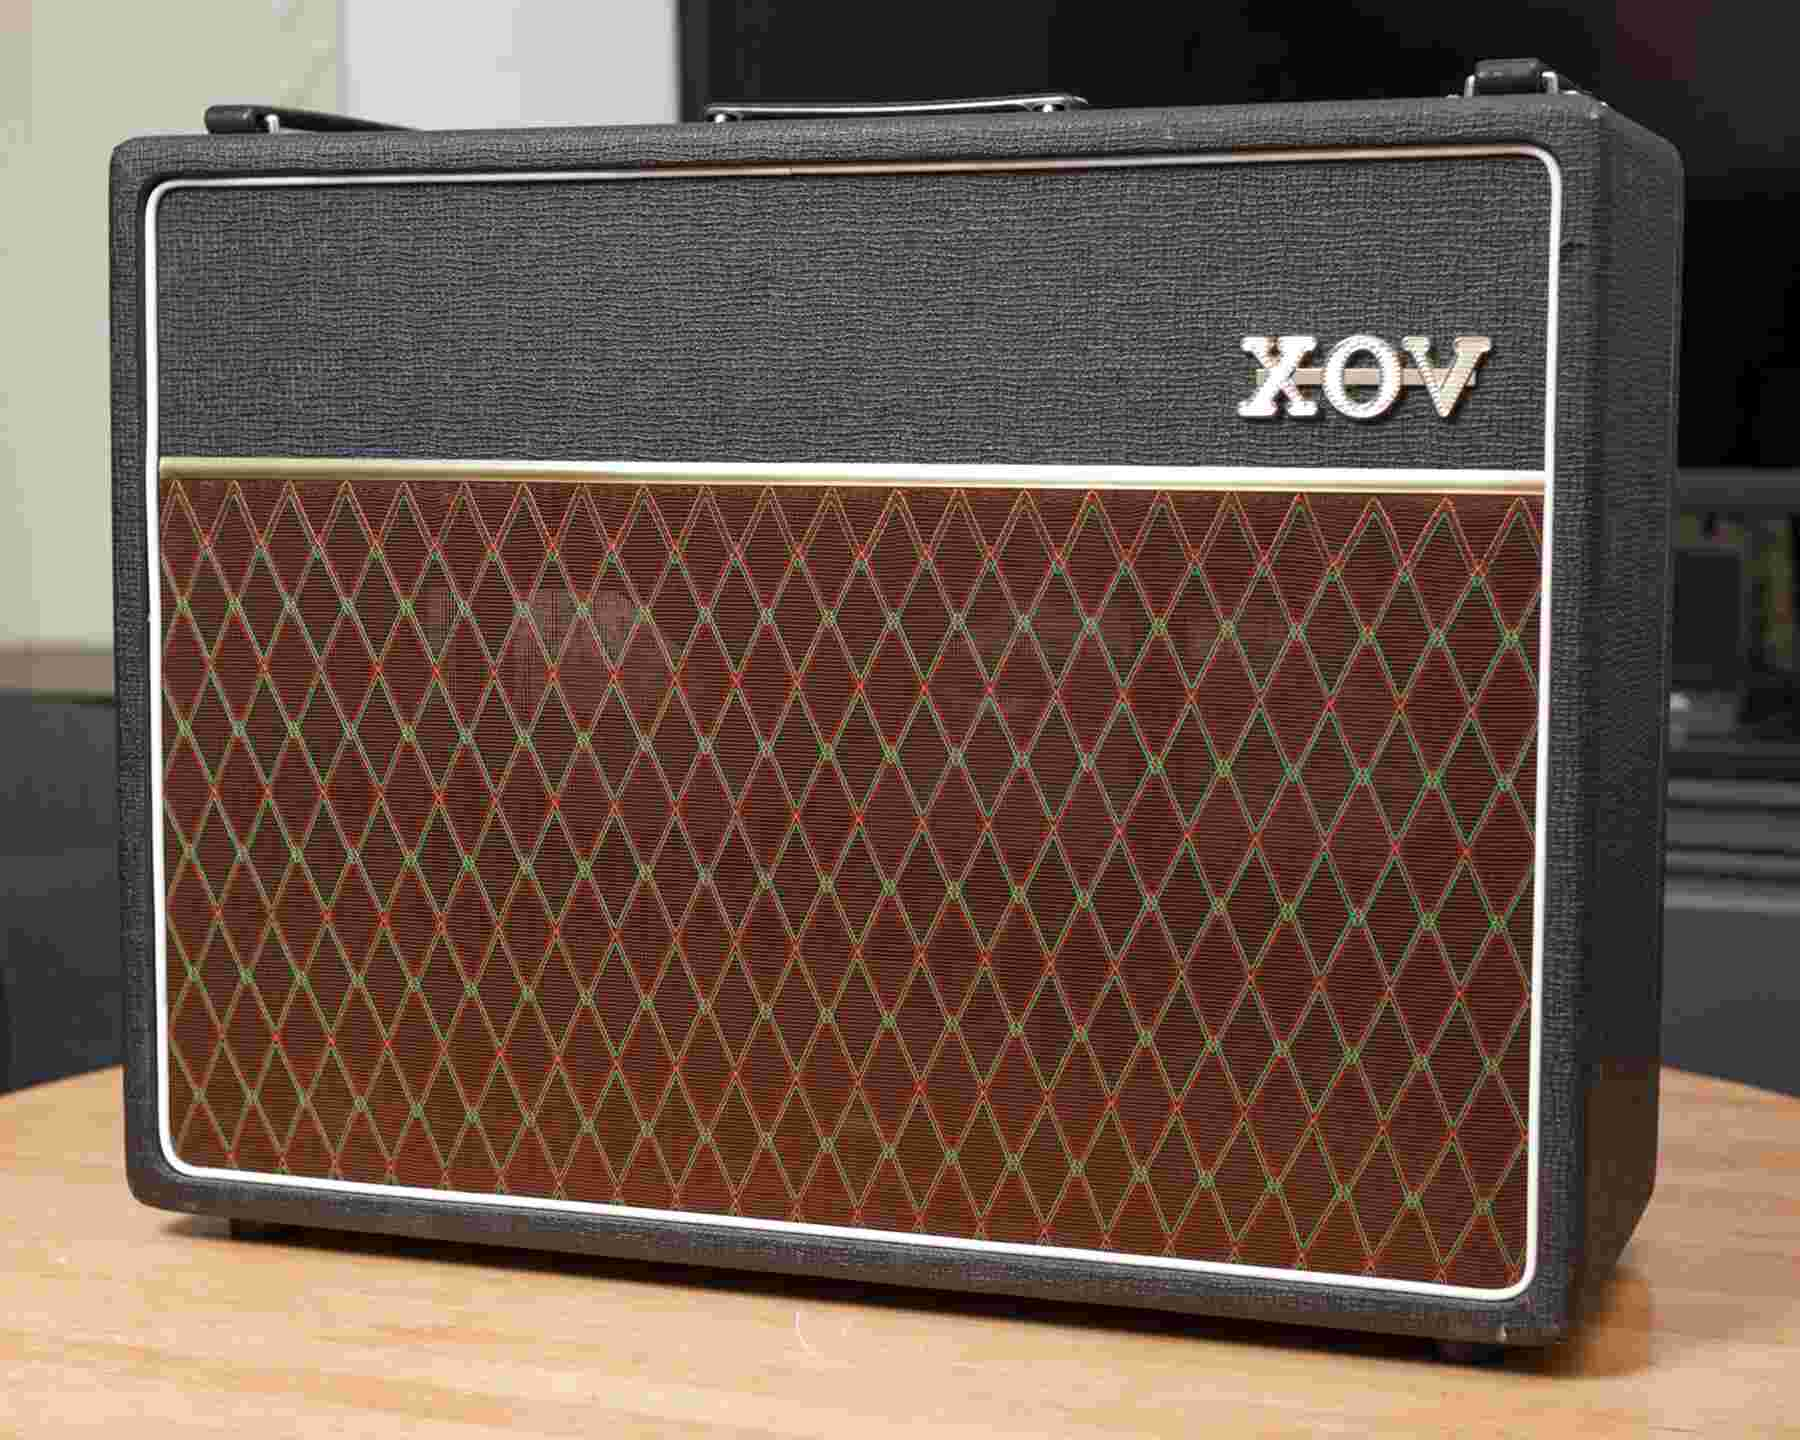 Vox Ac30 for sale in UK | 35 second-hand Vox Ac30